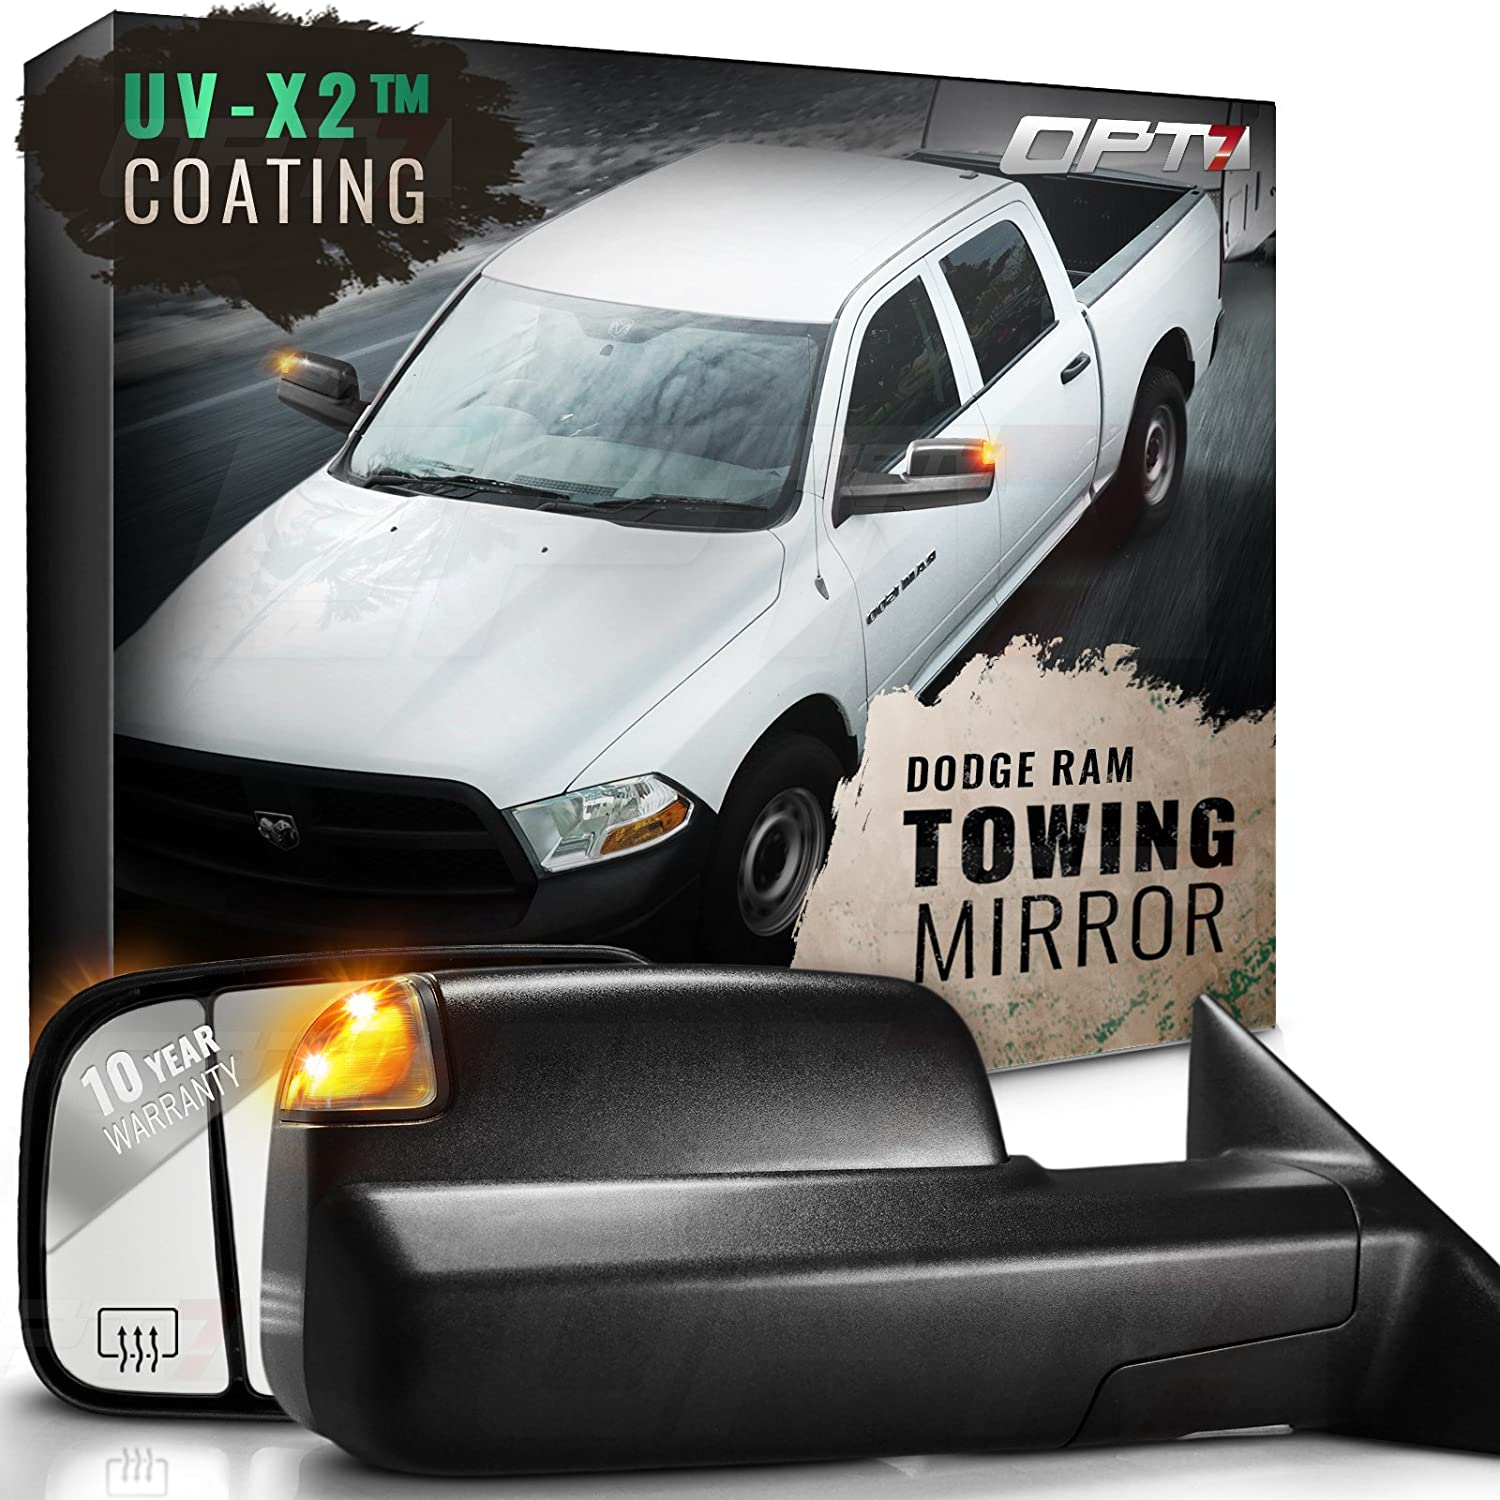 Opt7 Deluxe Pair Truck Towing Trailer Mirrors For 2009 1954 Dodge Tow 2012 Ram 1500 2500 3500 Powered Heated Turn Signals Adjustable Foldable Puddle